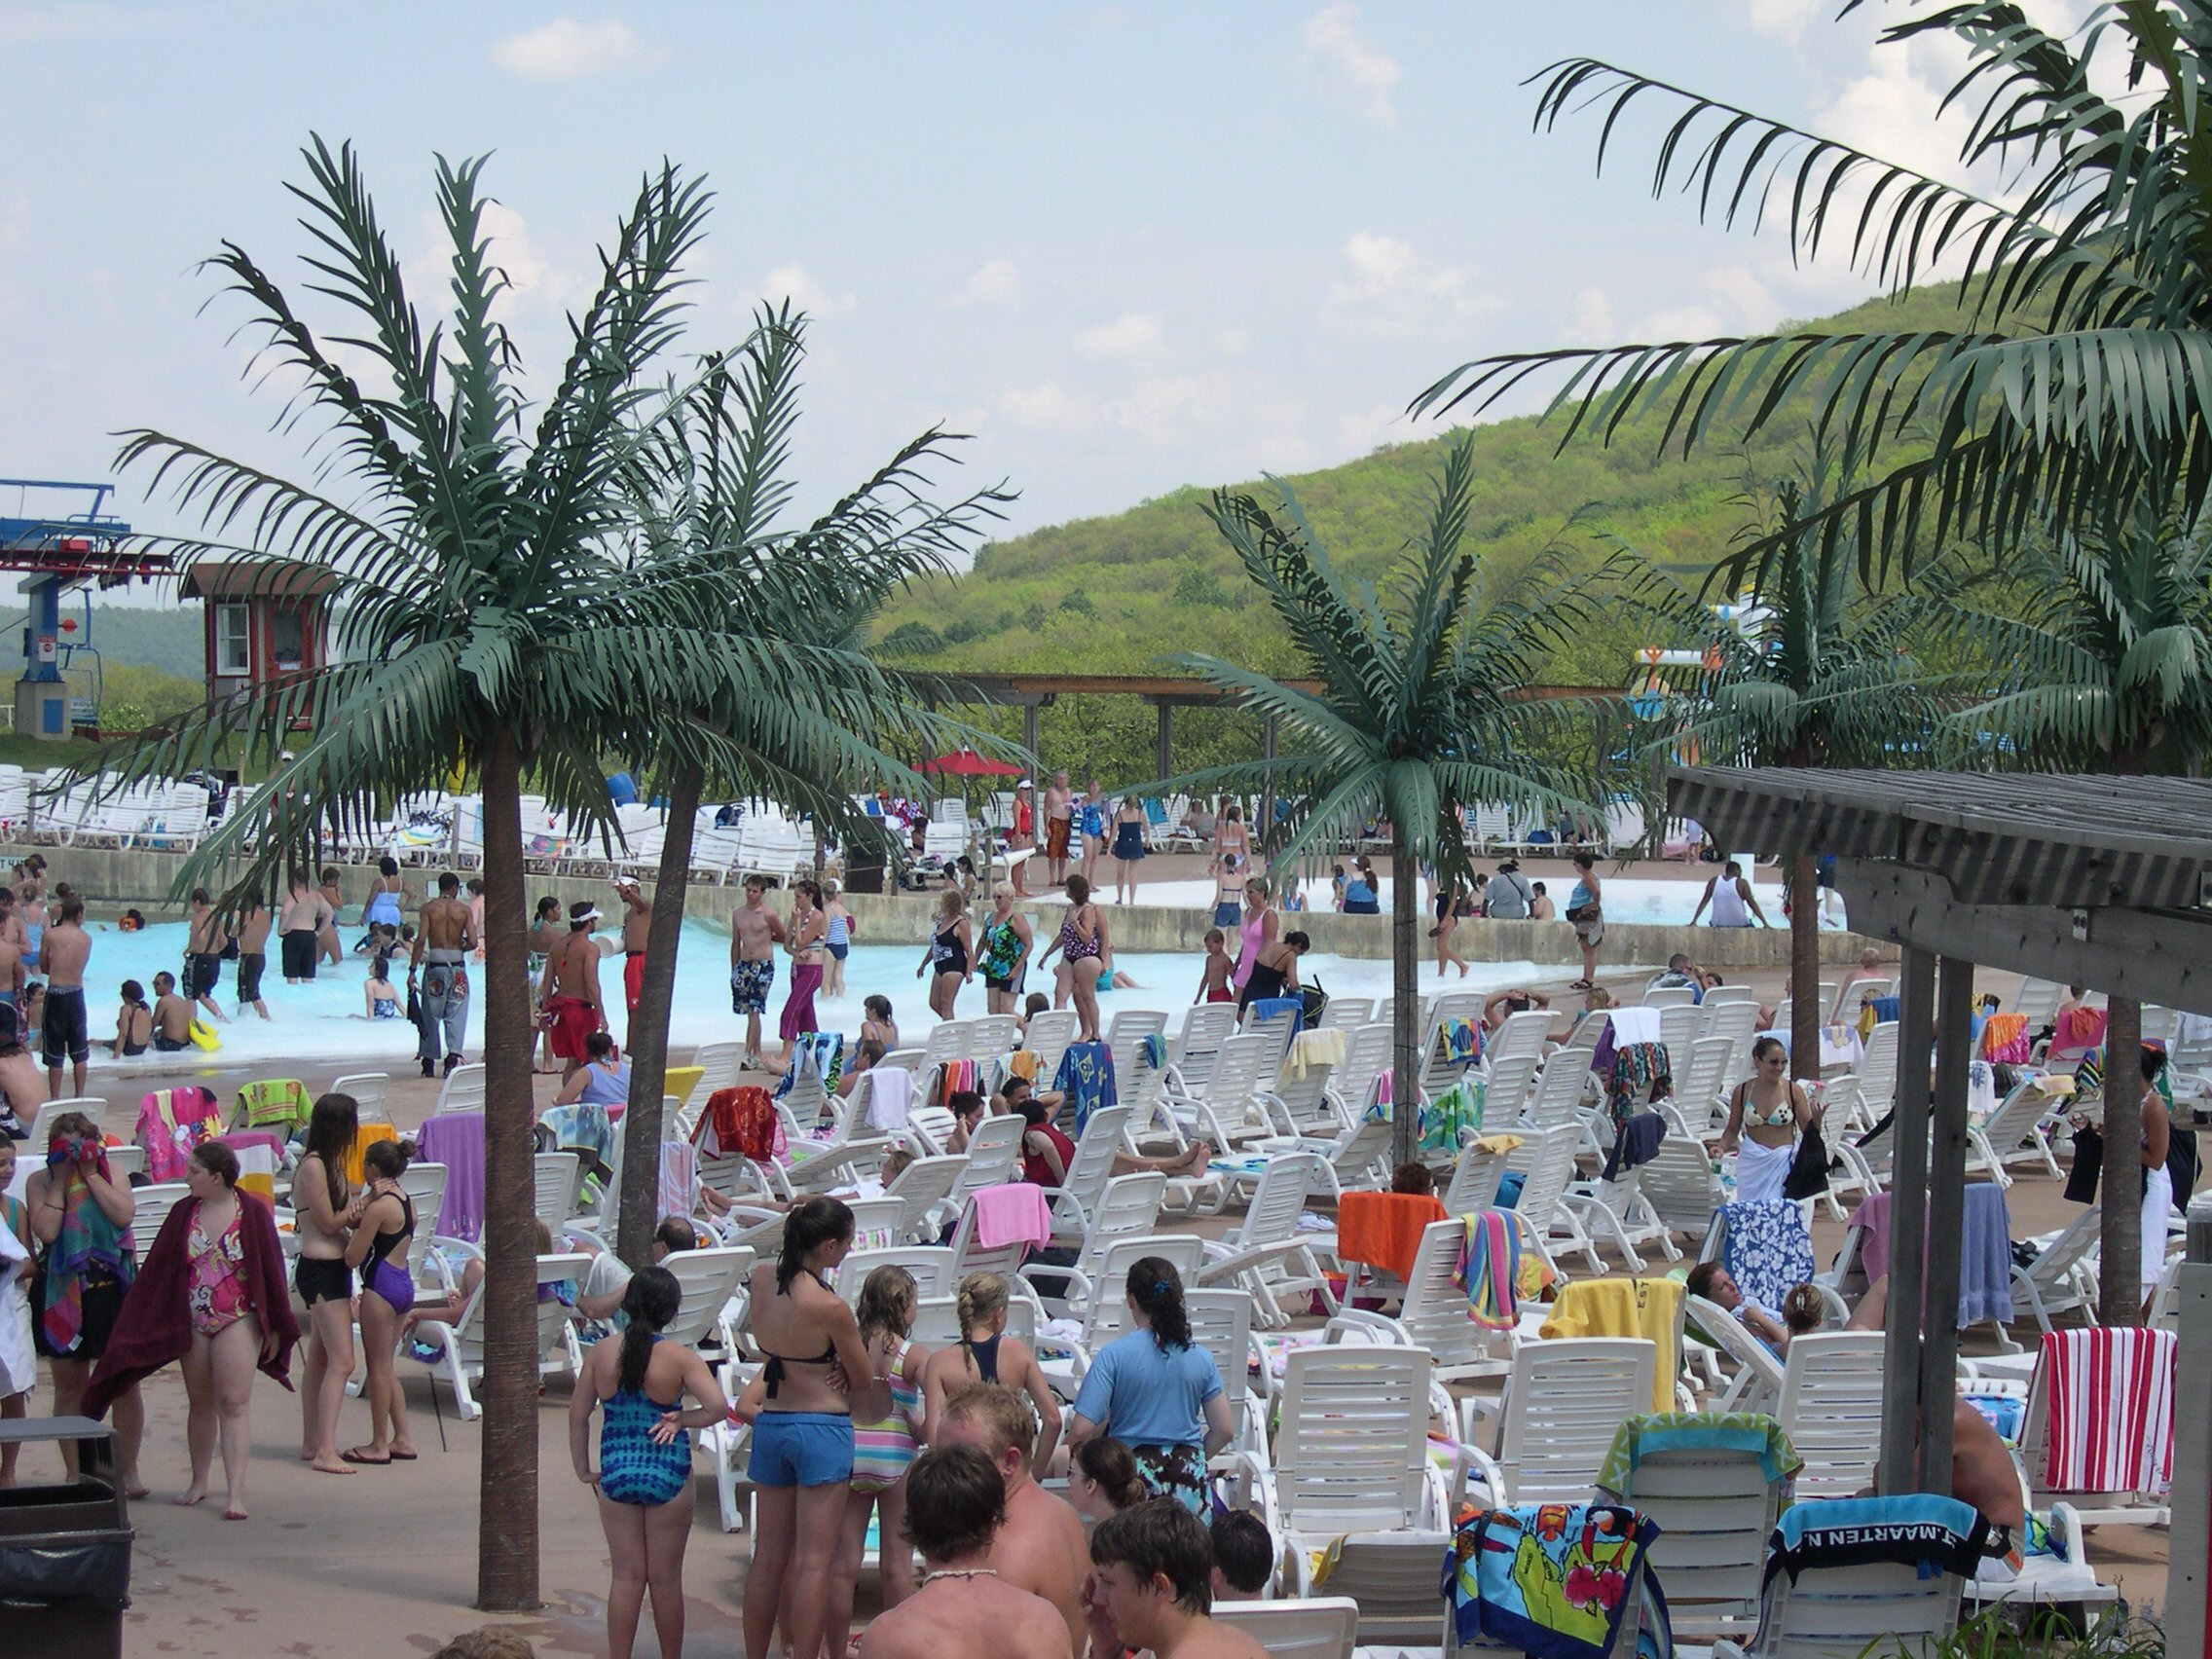 <p>The demand for unique and creatively designed Water Parks has increased.</p>